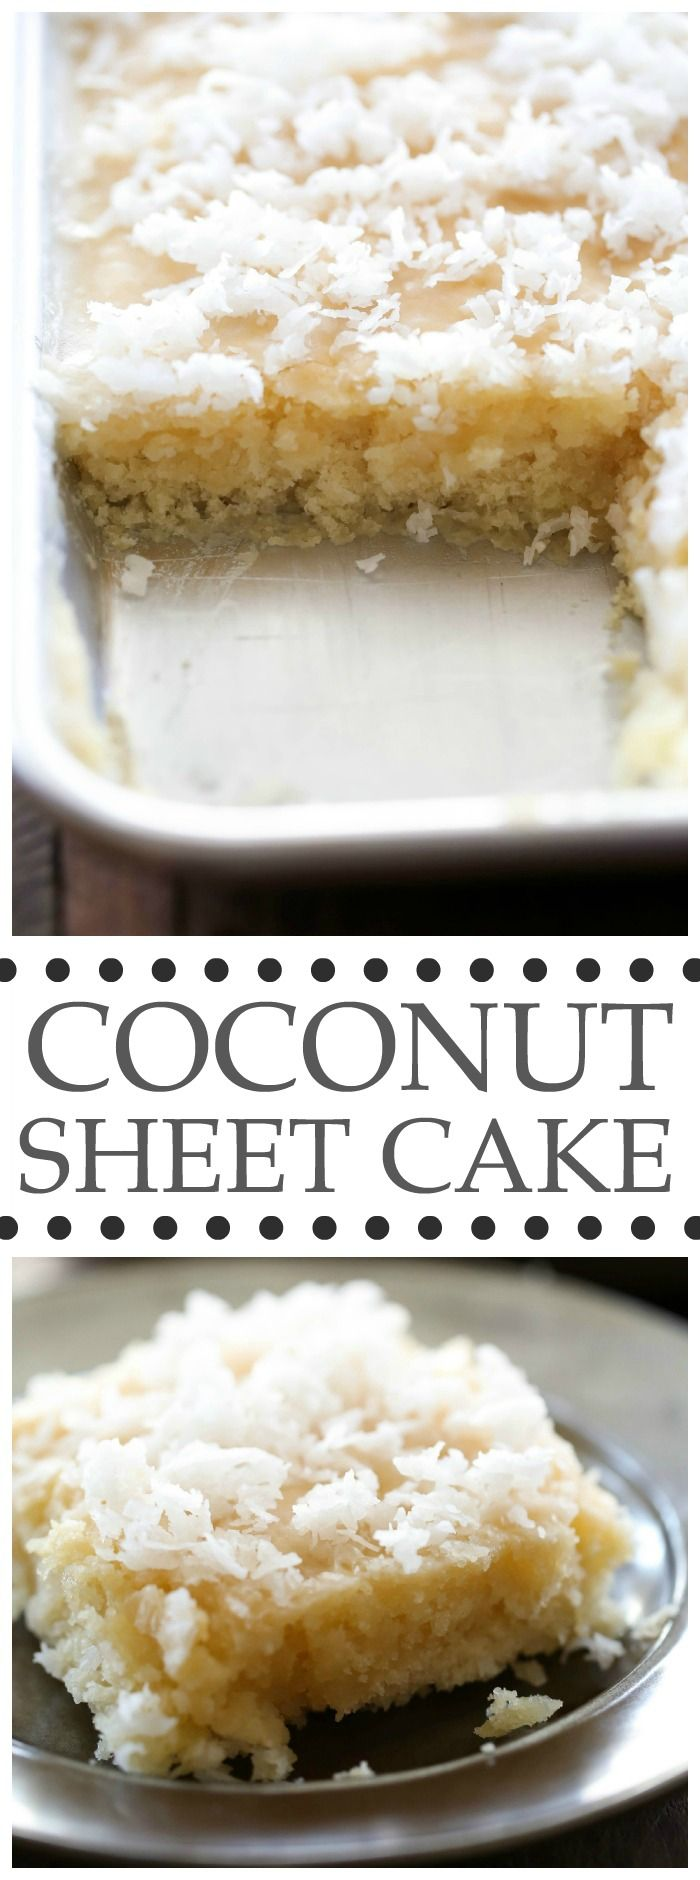 air foamposites cheap Coconut Sheet Cake from chef in training com    This cake literally MELTS IN YOUR MOUTH    It is beyond delicious and super simple to make  One of my favorite cake recipes to date